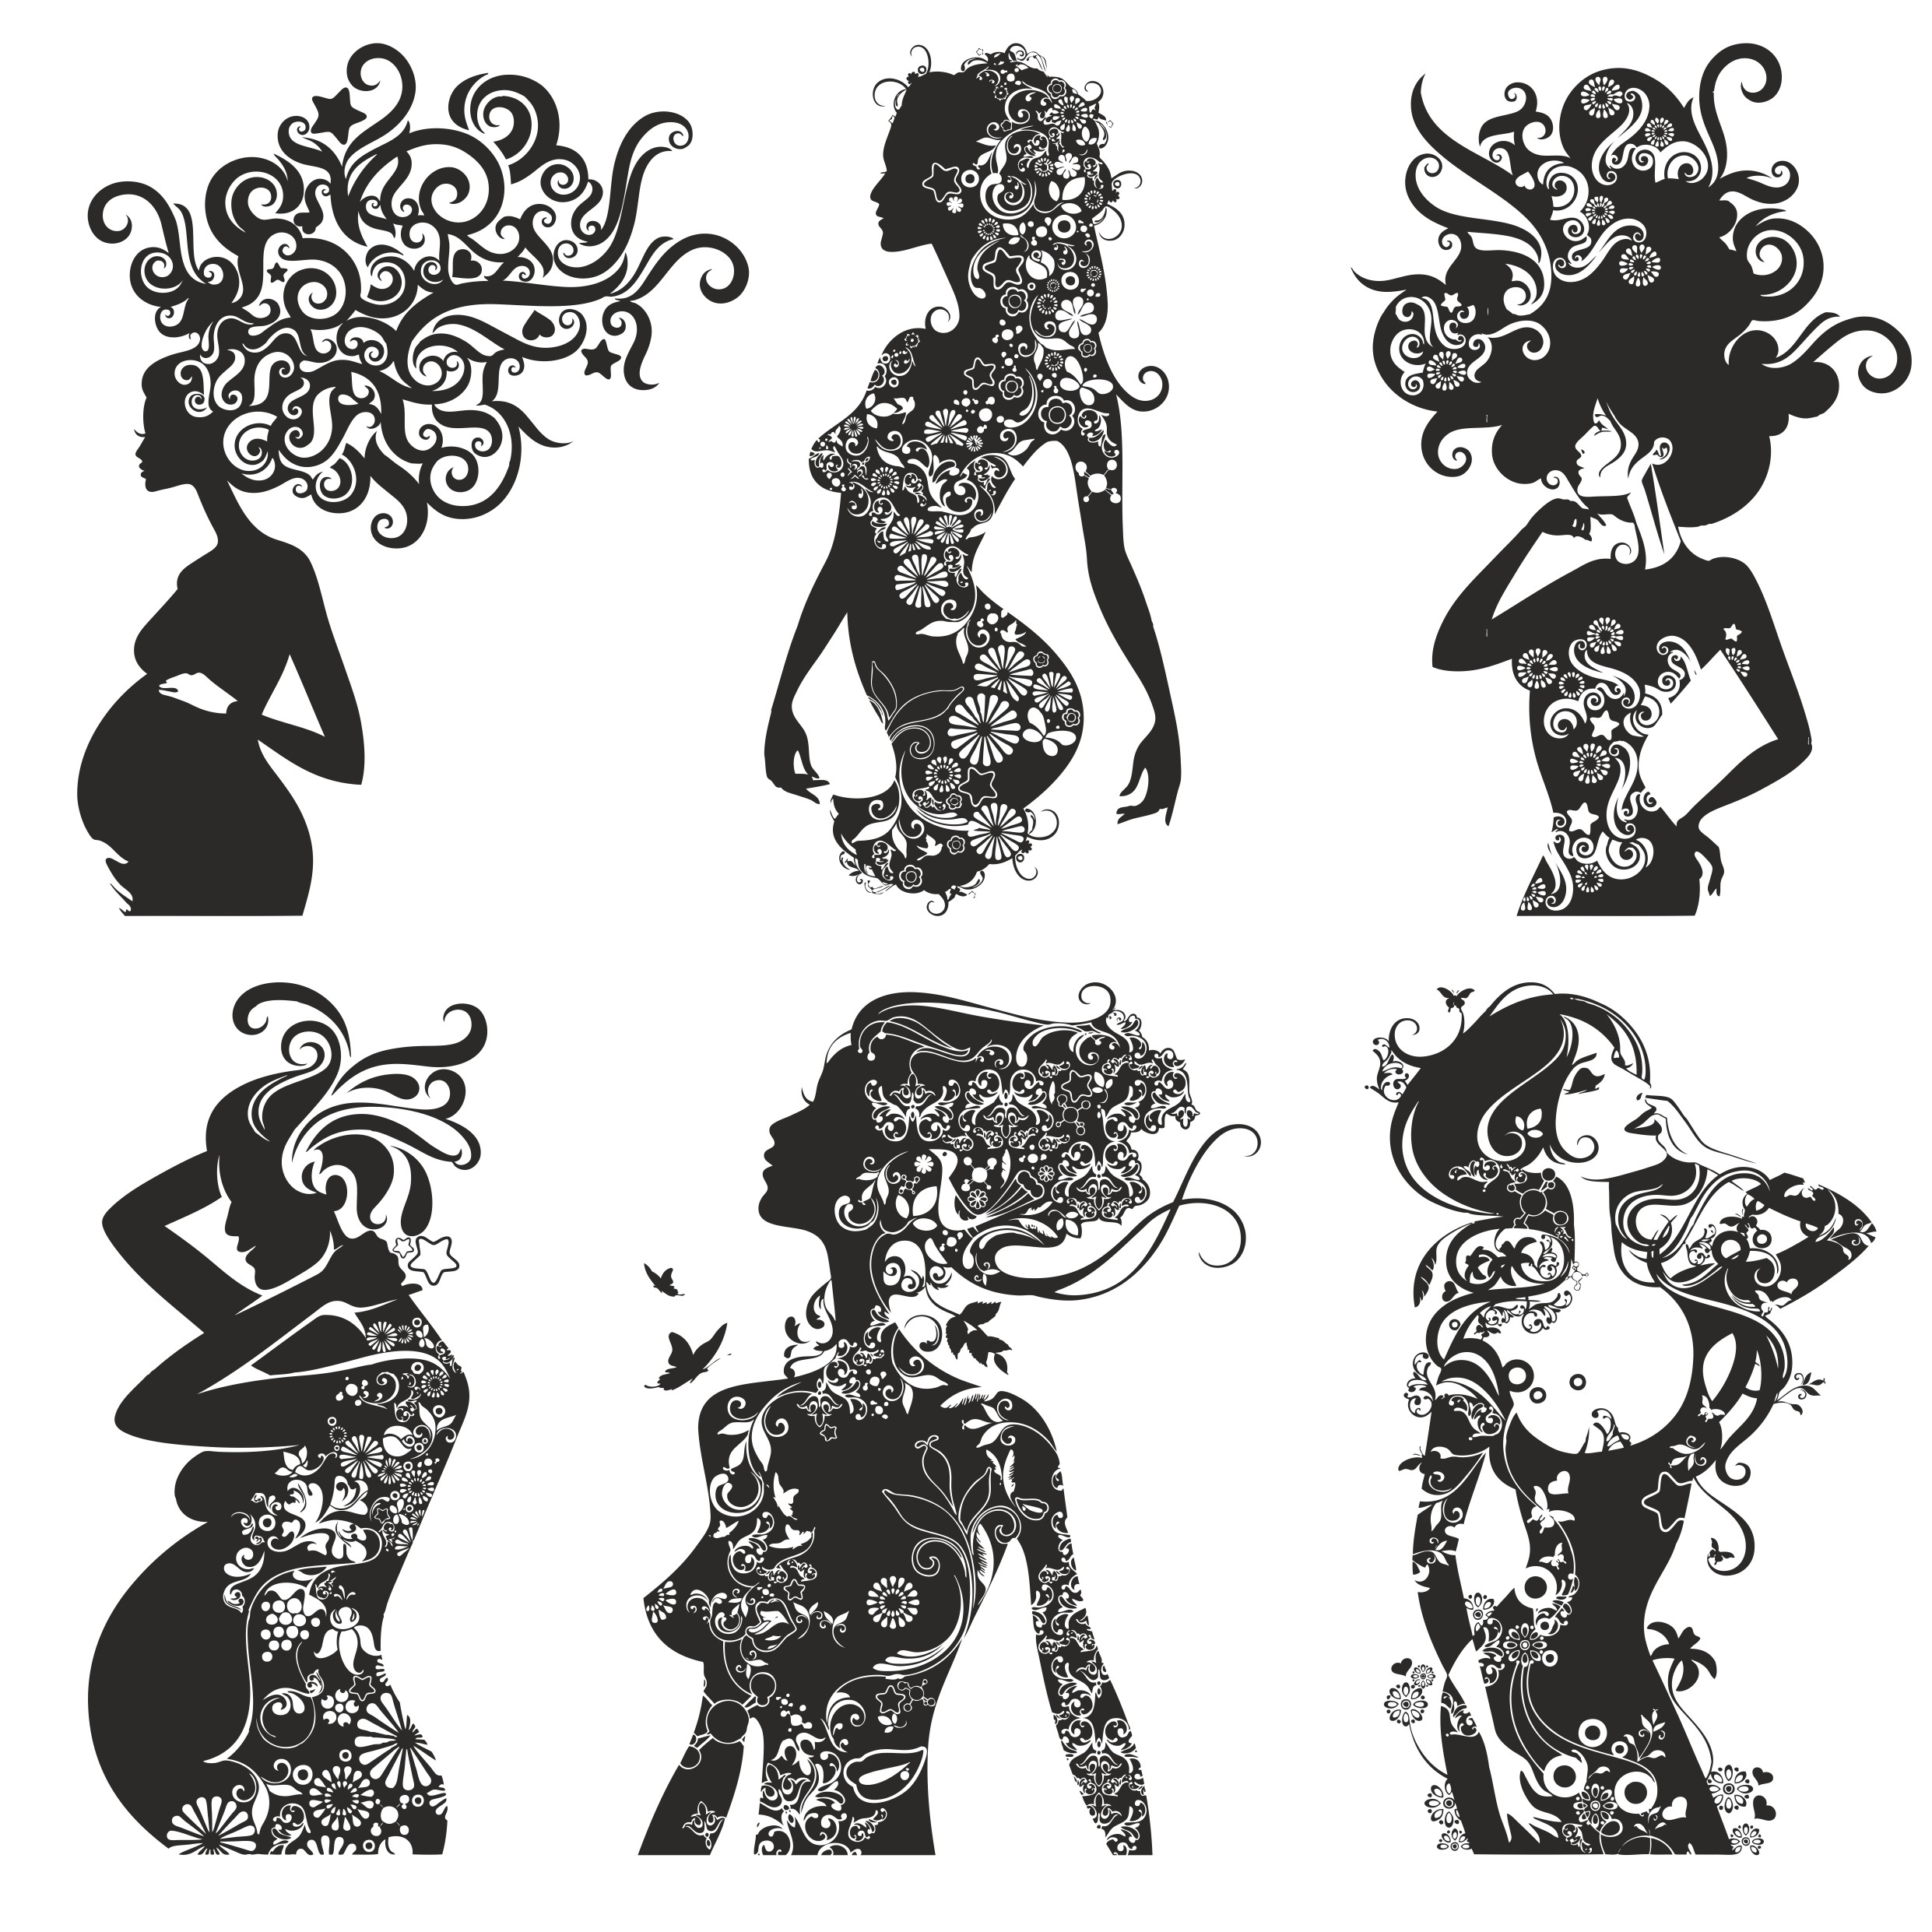 Vintage Girls Silhouettes With Patterns Free CDR Vectors Art